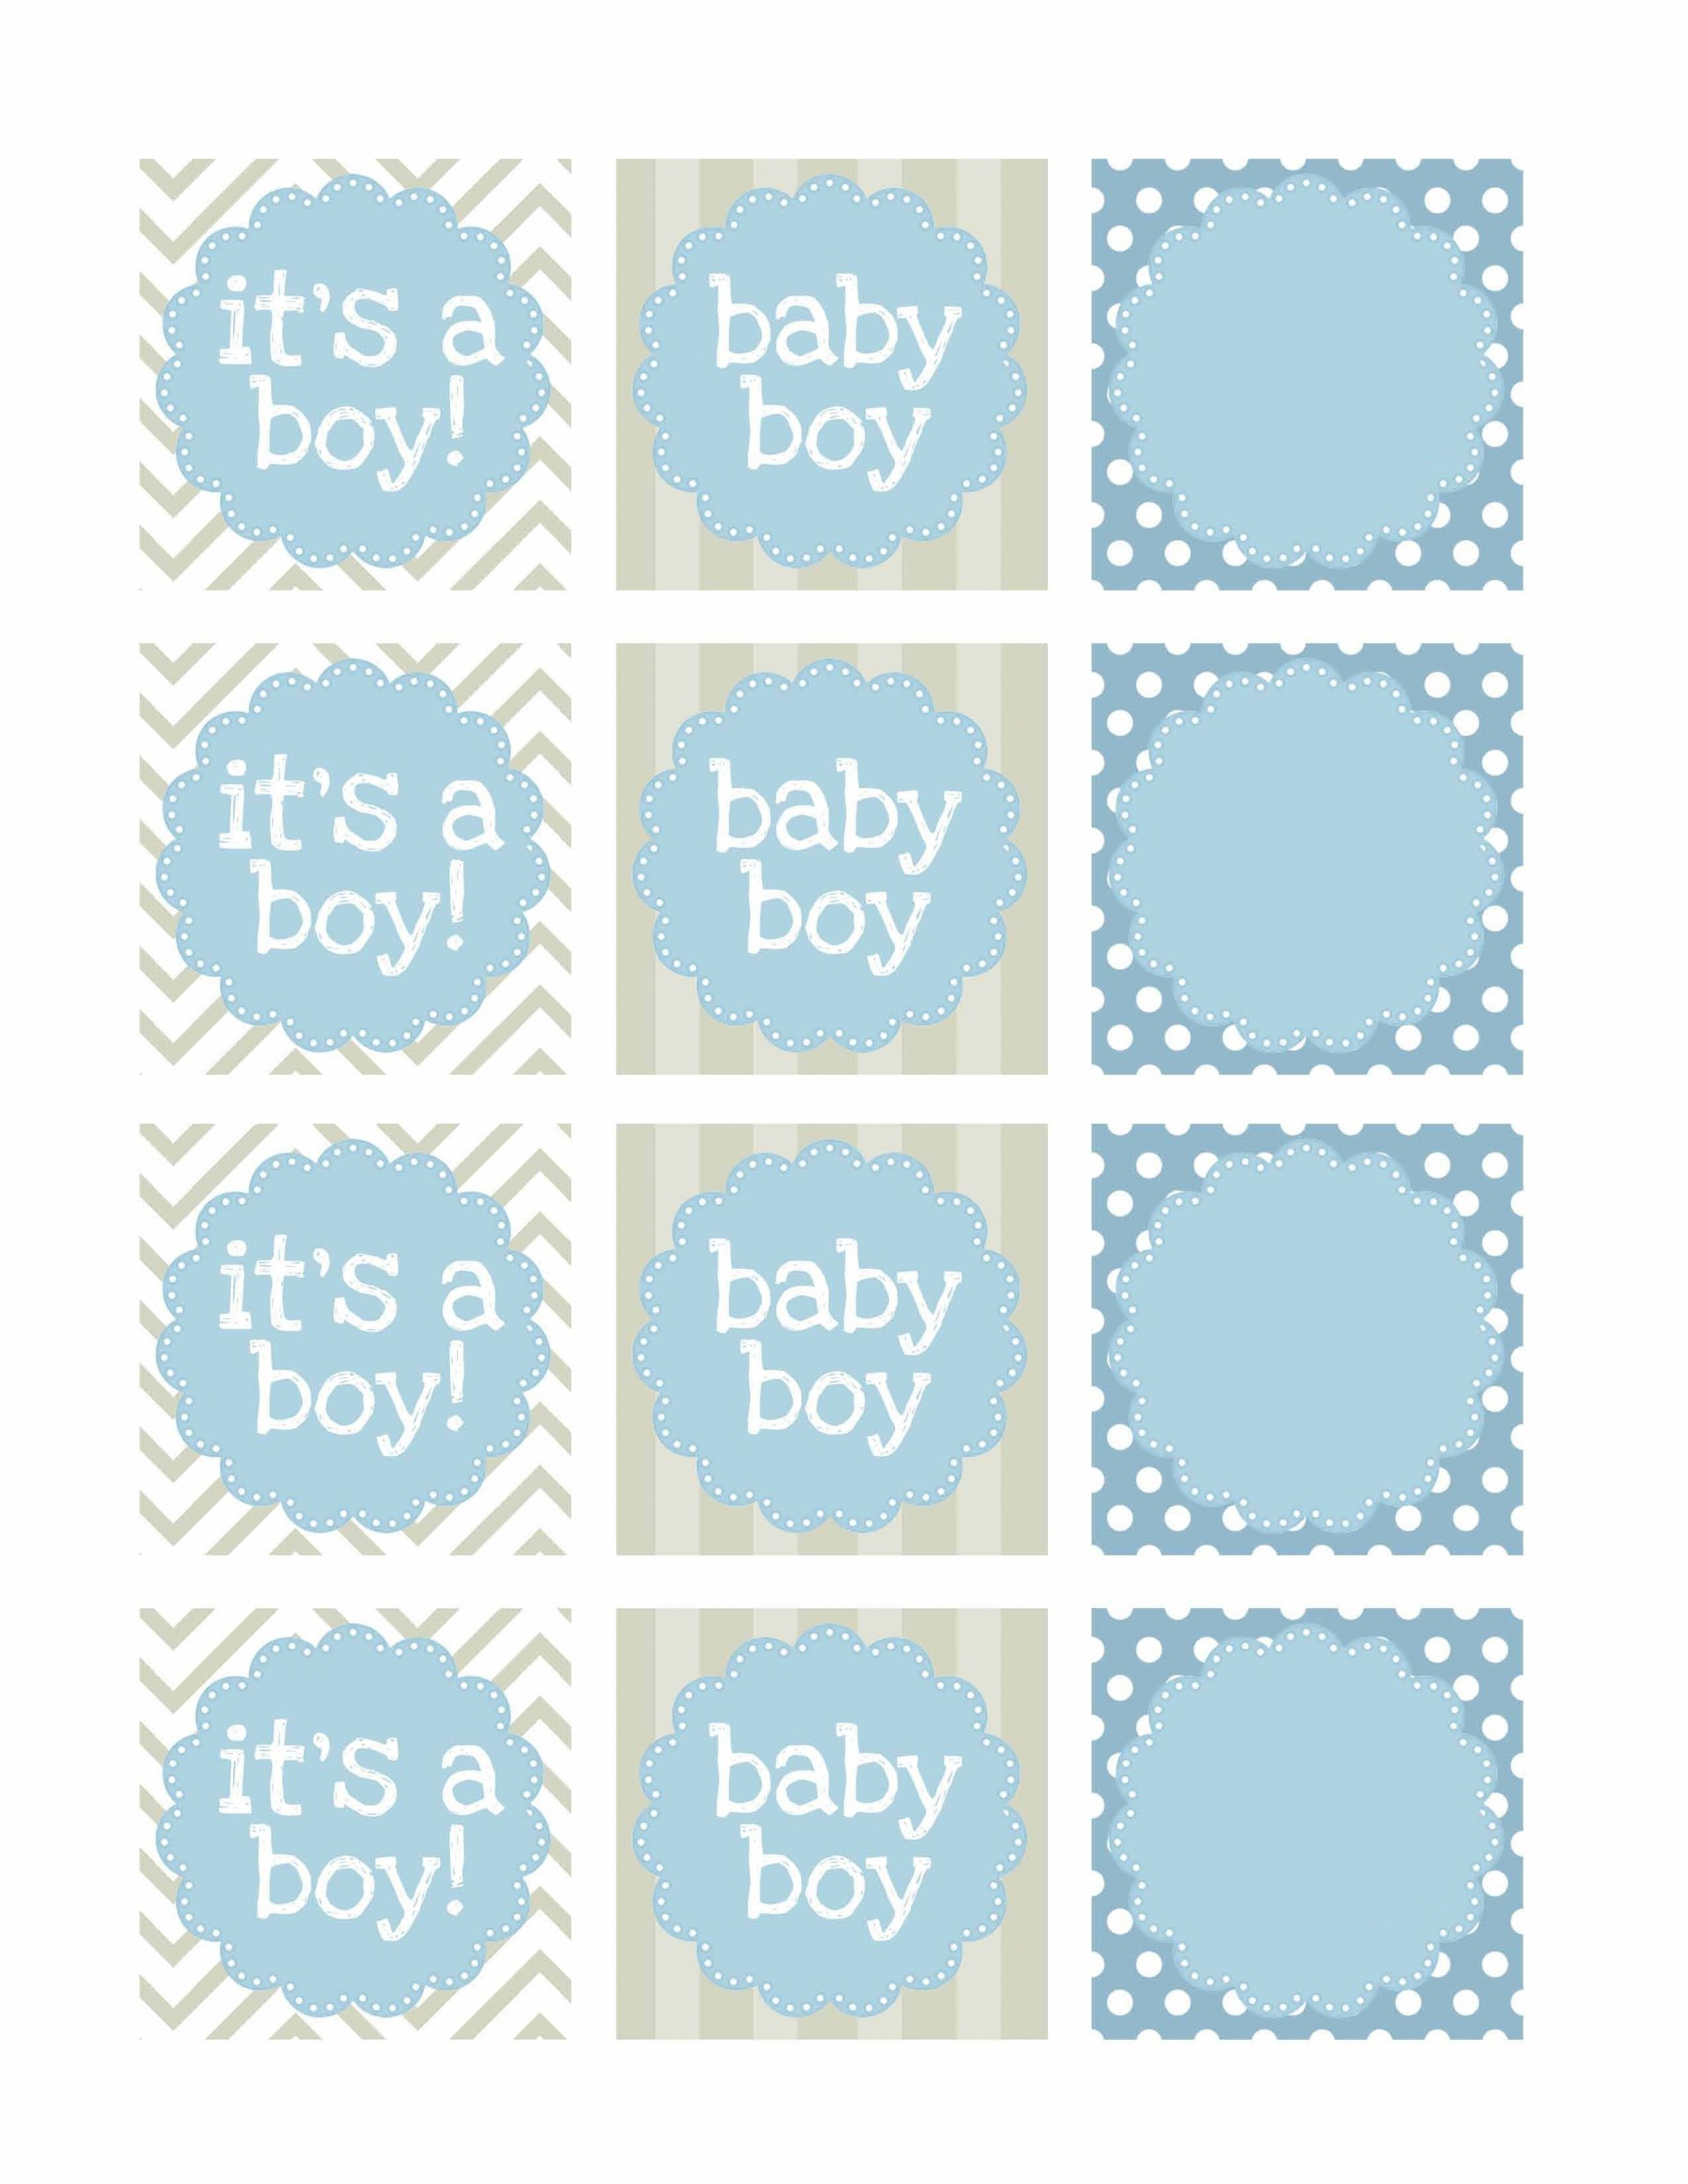 000 Unique Free Baby Shower Printable Boy Image  Oh Invitation For1920